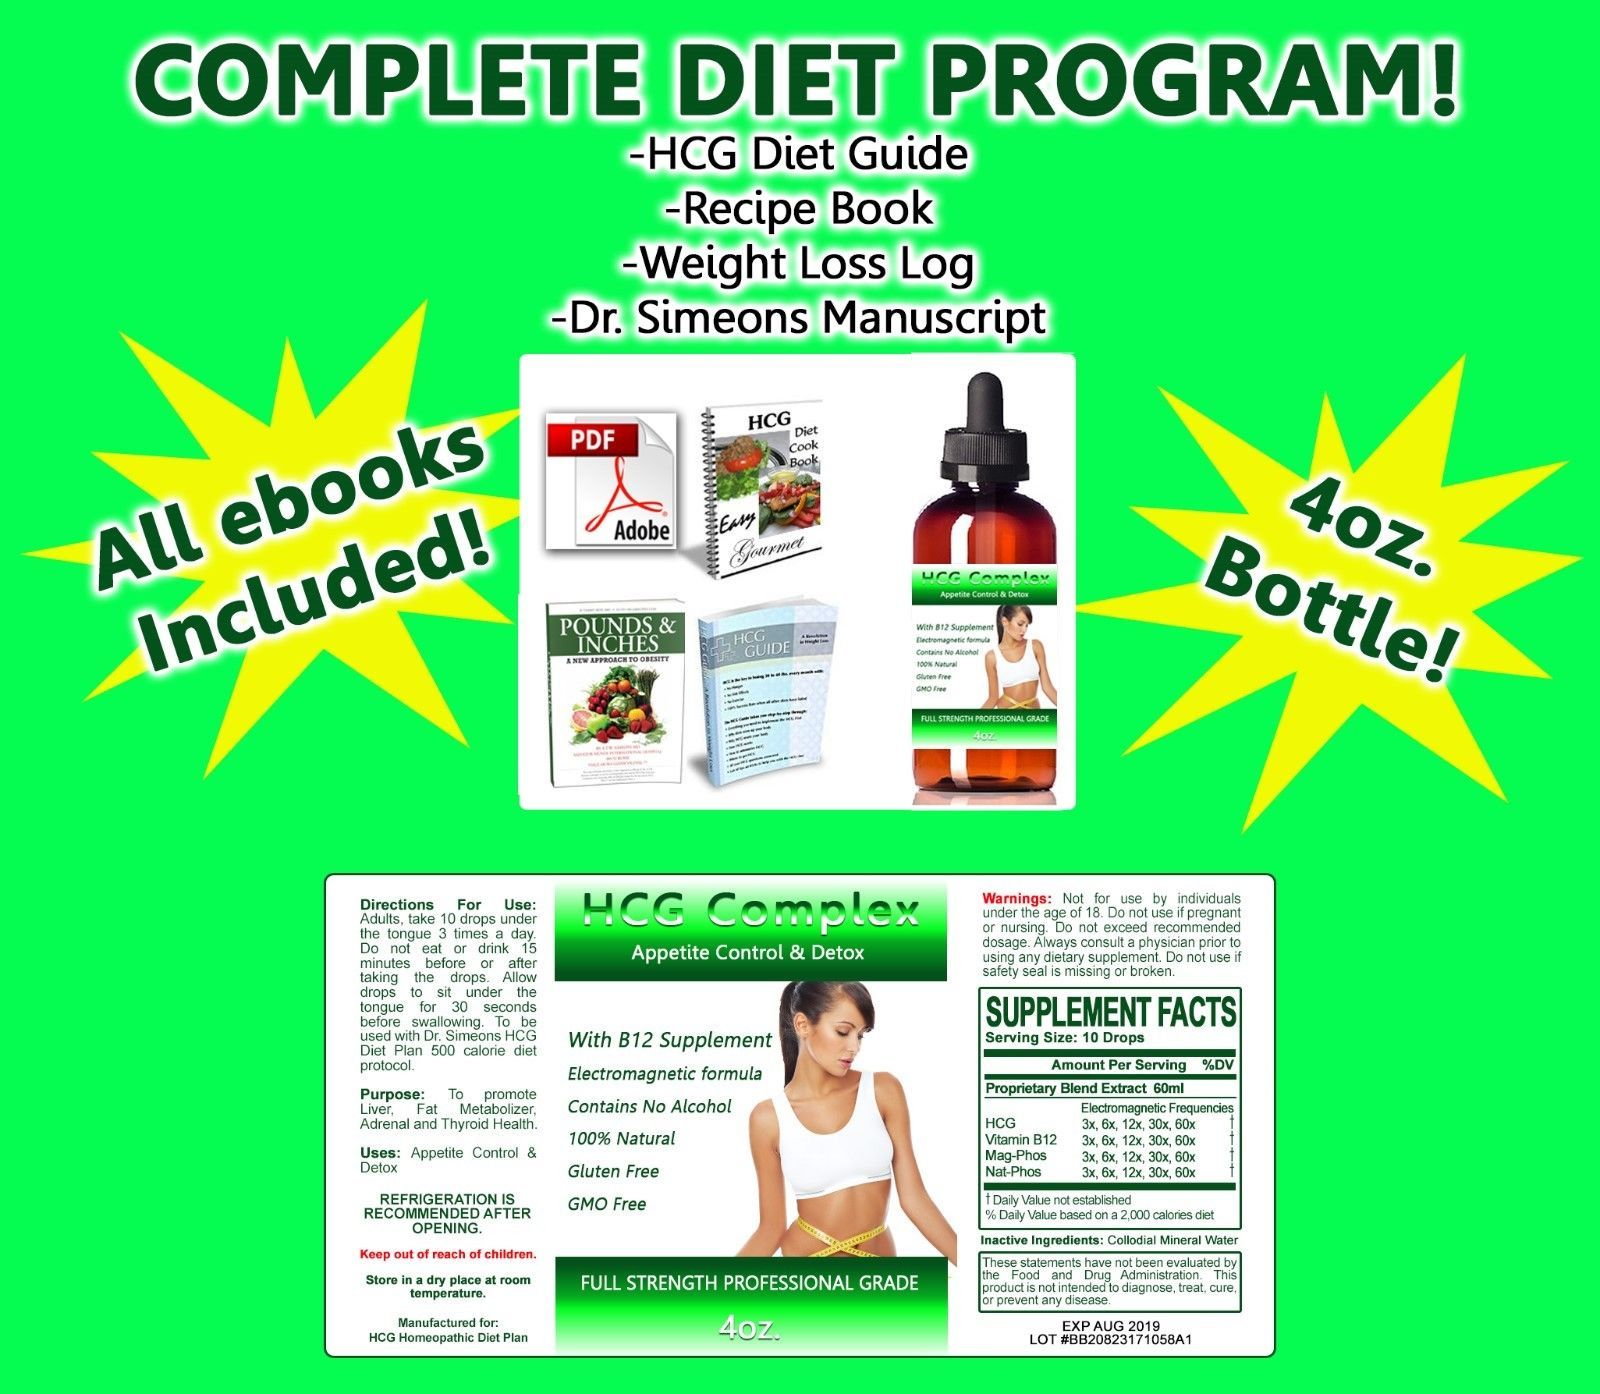 Diet plan to lose weight and gain muscle